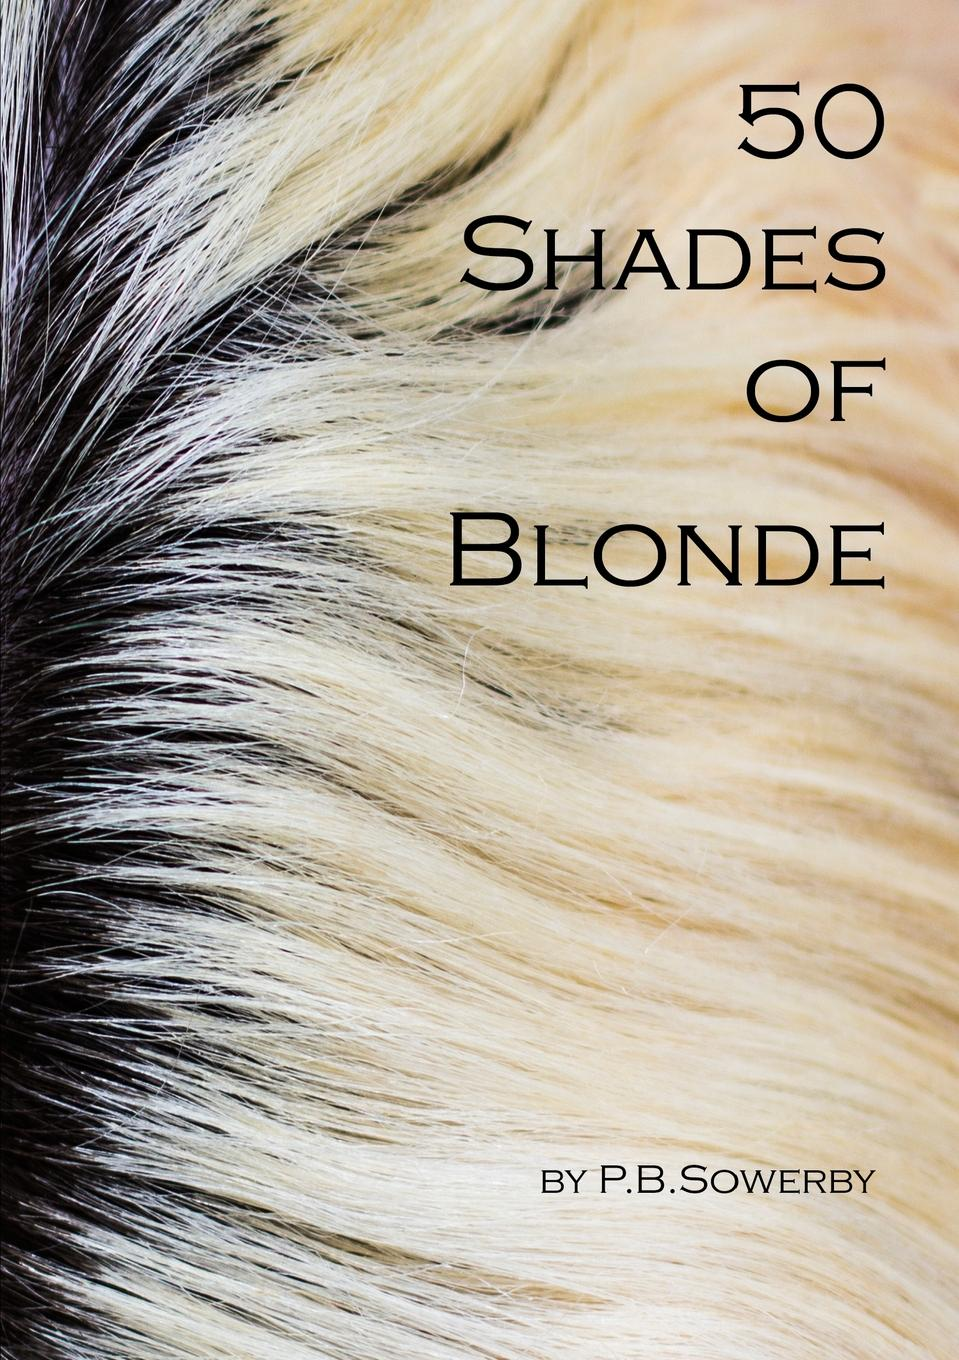 Peter Sowerby 50 Shades of Blonde knack knack rock roll is good for you